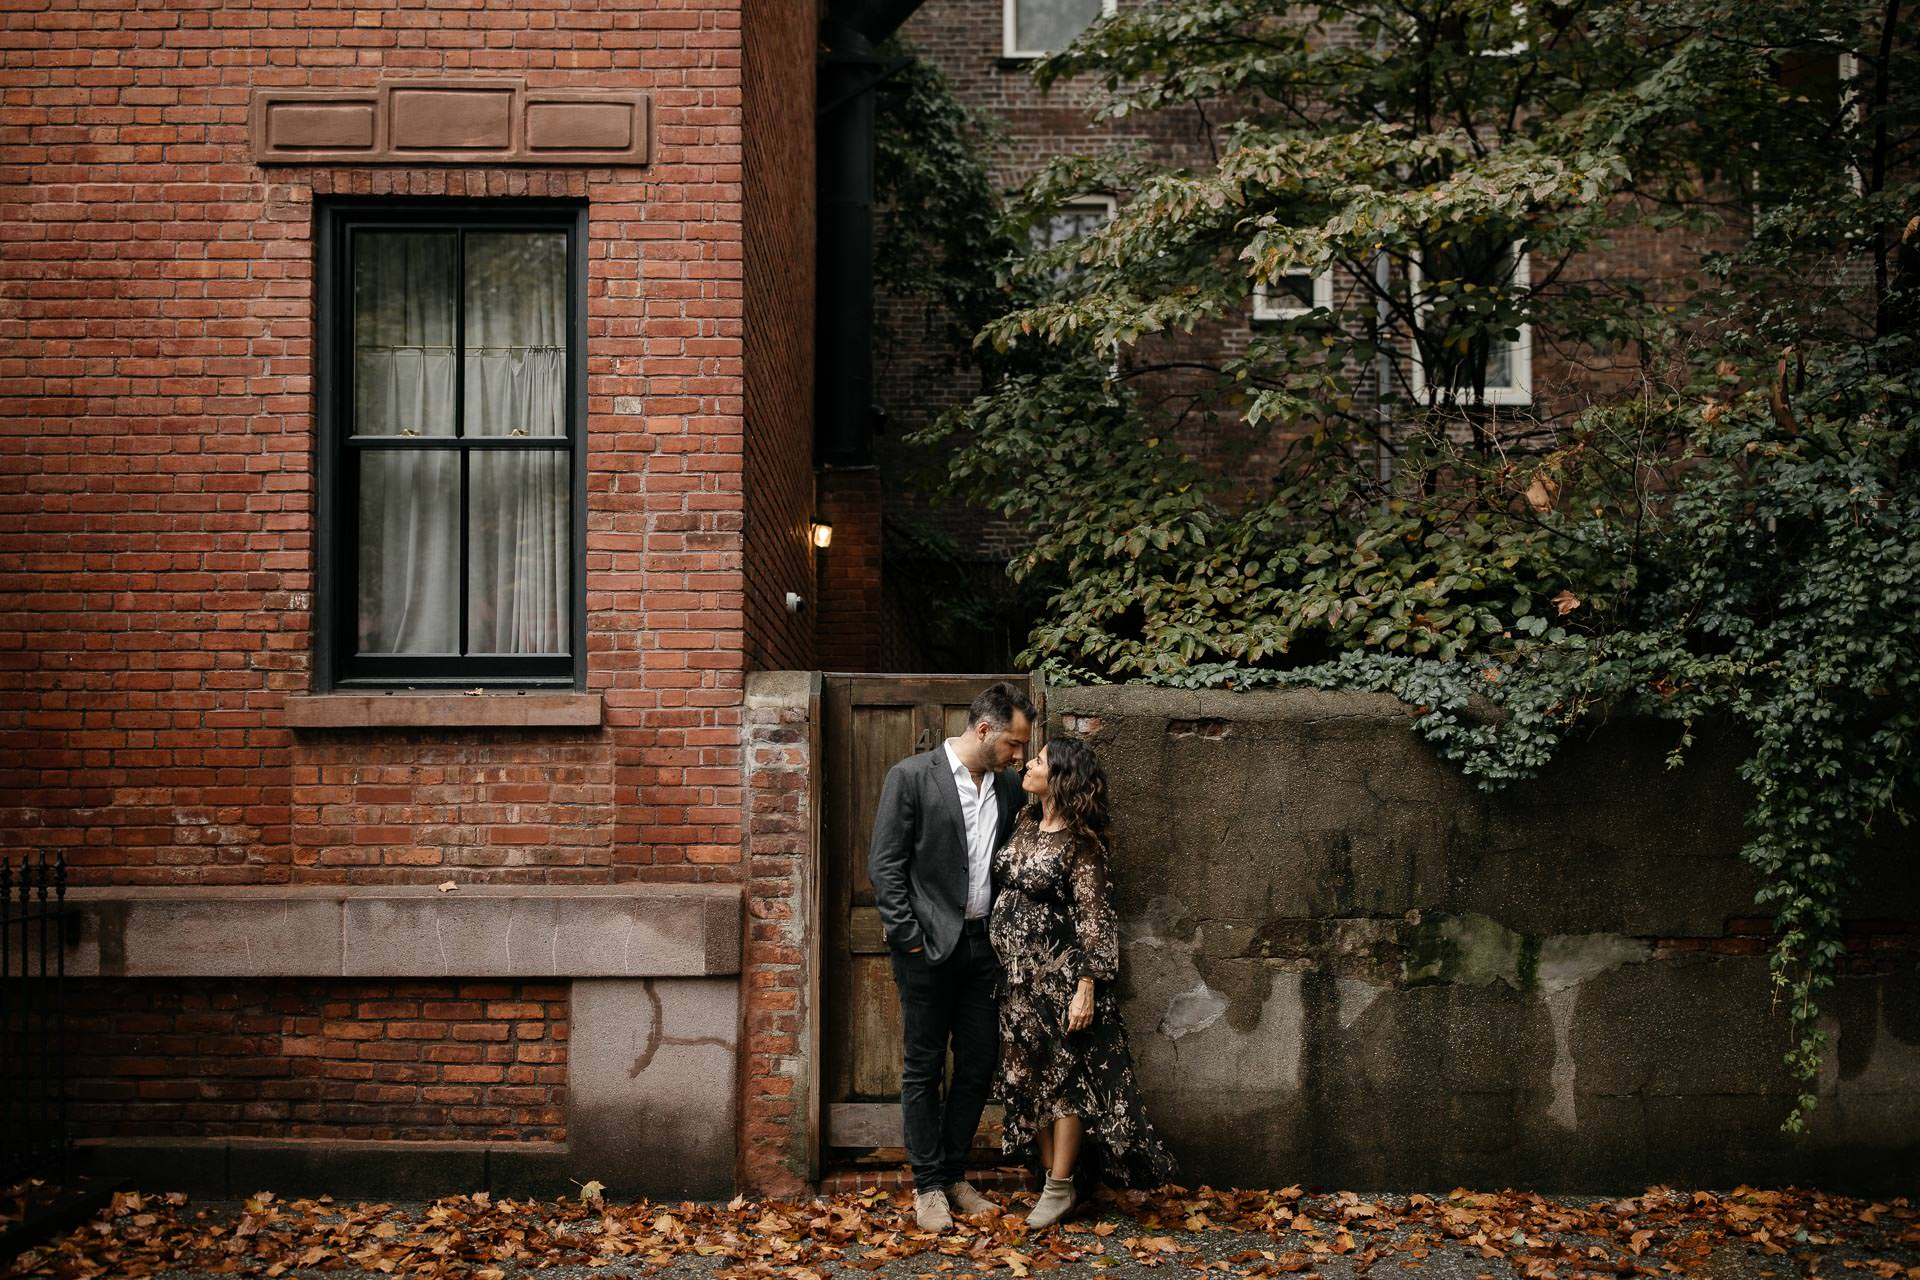 Rime Arodaki & Greg Finck Fall Engagement in West Village, New York City by Jean-Laurent Gaudy